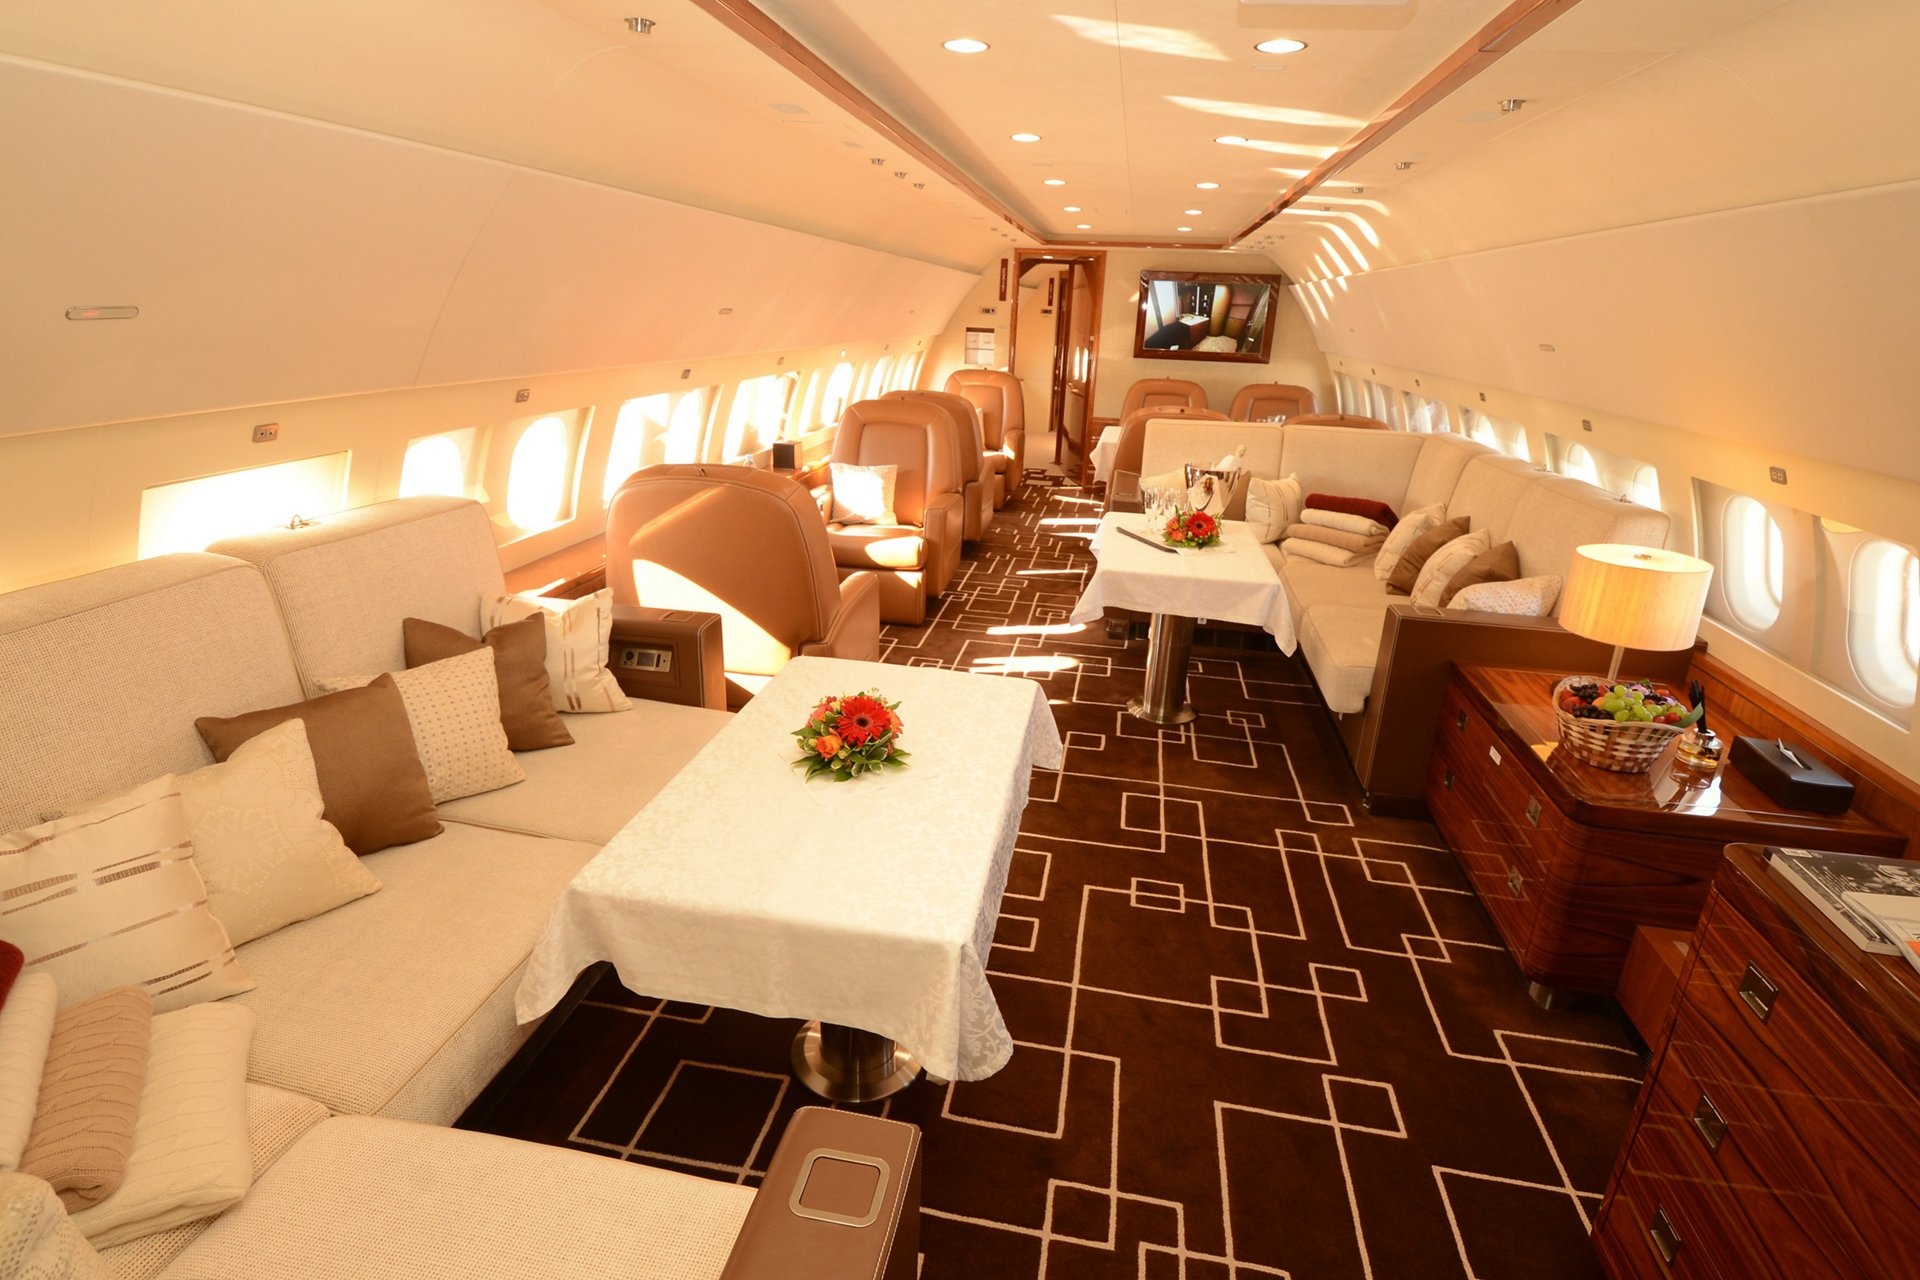 The MJet ACJ319 to be displayed at the 2019 Russian Business Aviation Exhibition (RUBAE) features a spacious lounge